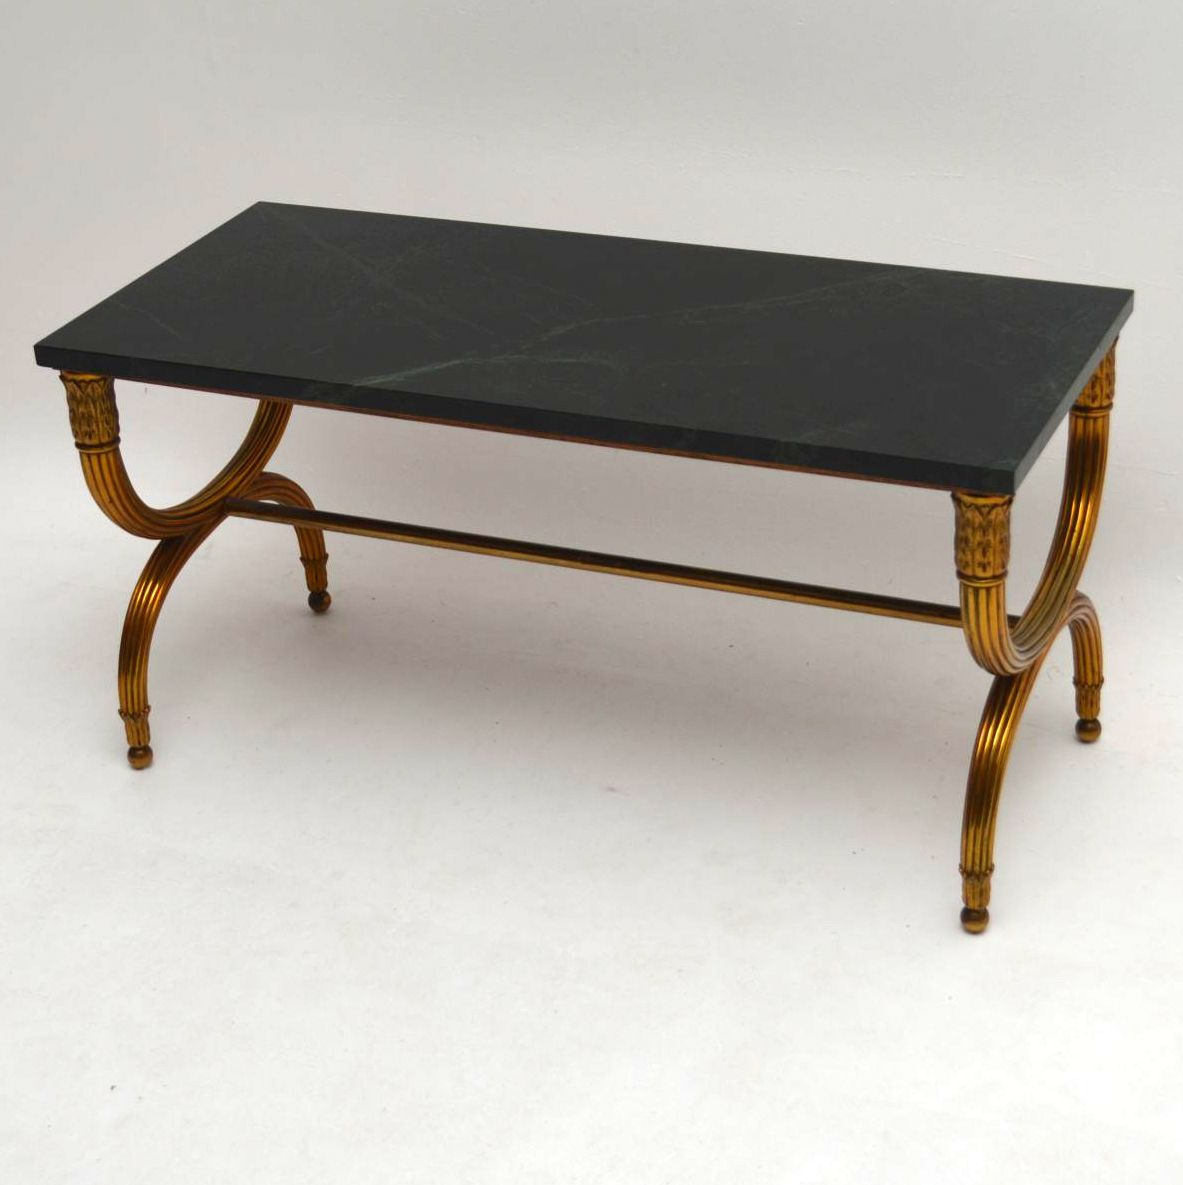 Antique French Gilt Metal Marble Top Coffee Table Interior Boutiques Antiques For Sale And